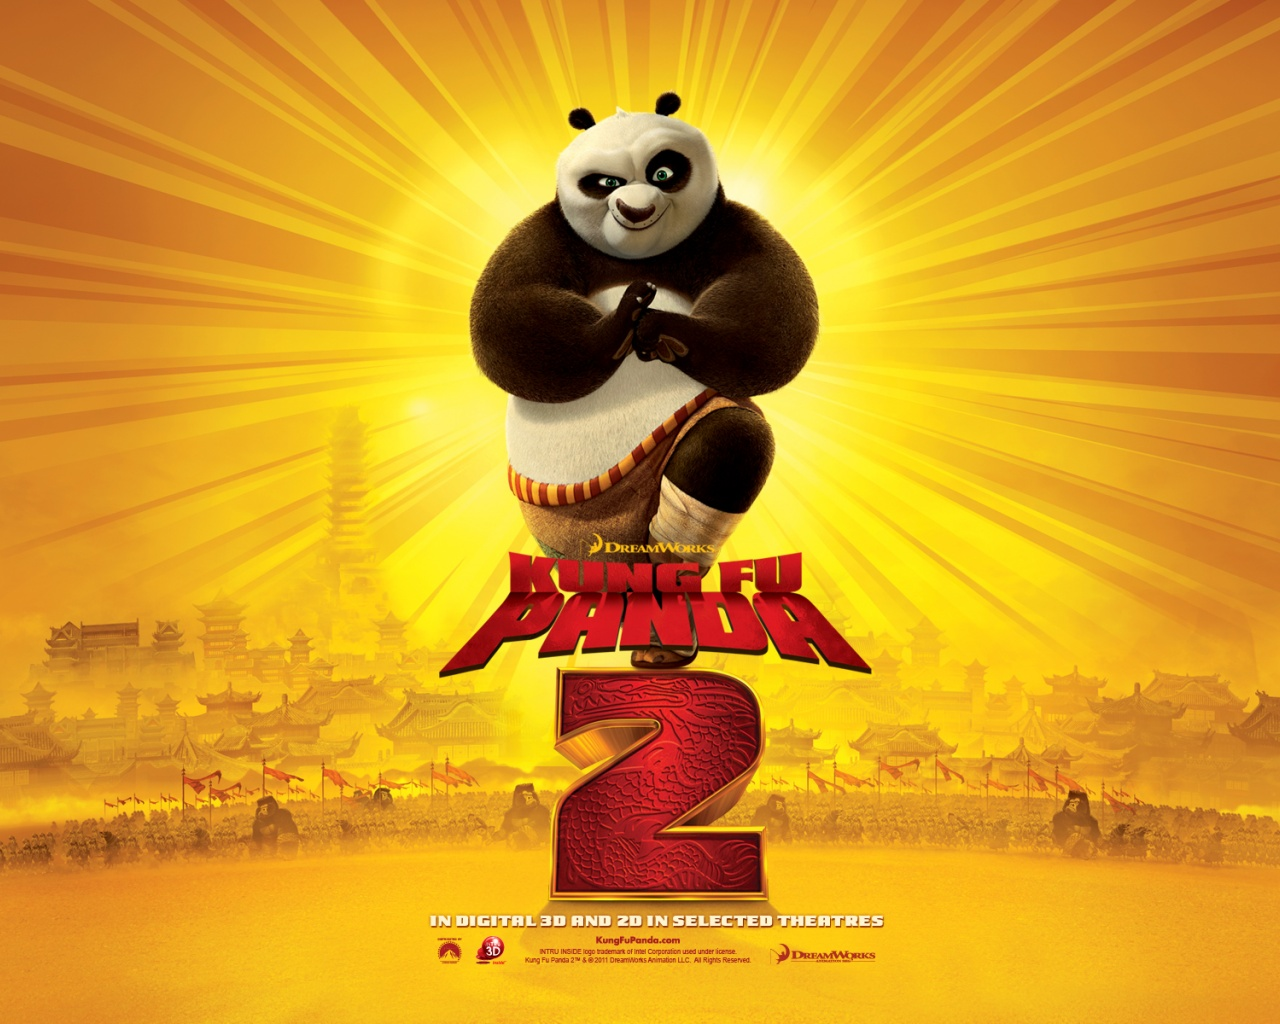 Download kung fu panda 3 mp4 movie | Kungfu Panda 3 Full ...